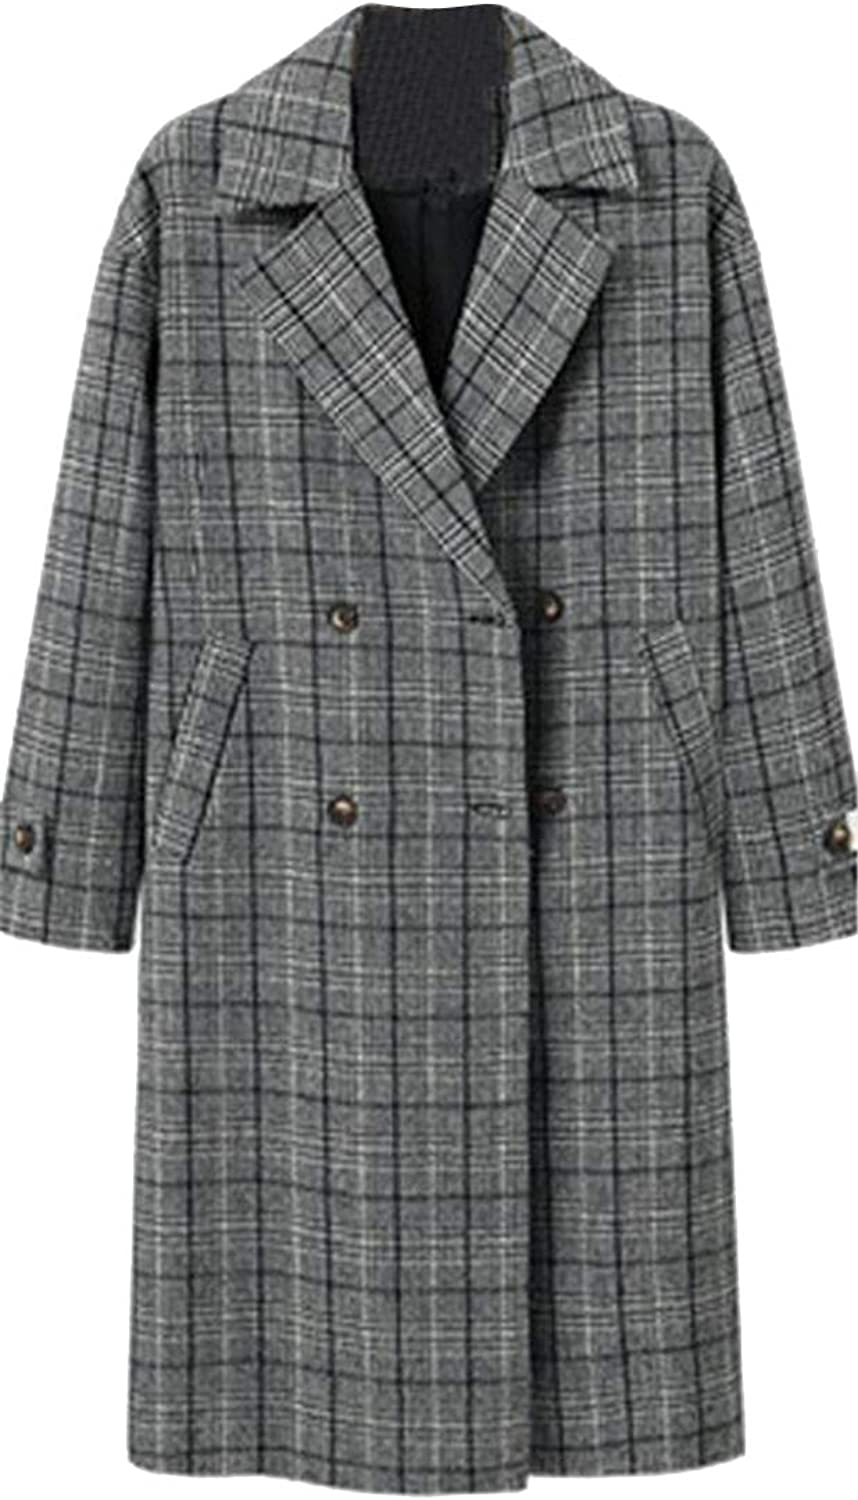 SHOWNO Womens Belted Loose Thick Plaid Double Breasted Plus Size Woolen Trench Pea Coat Overcoat